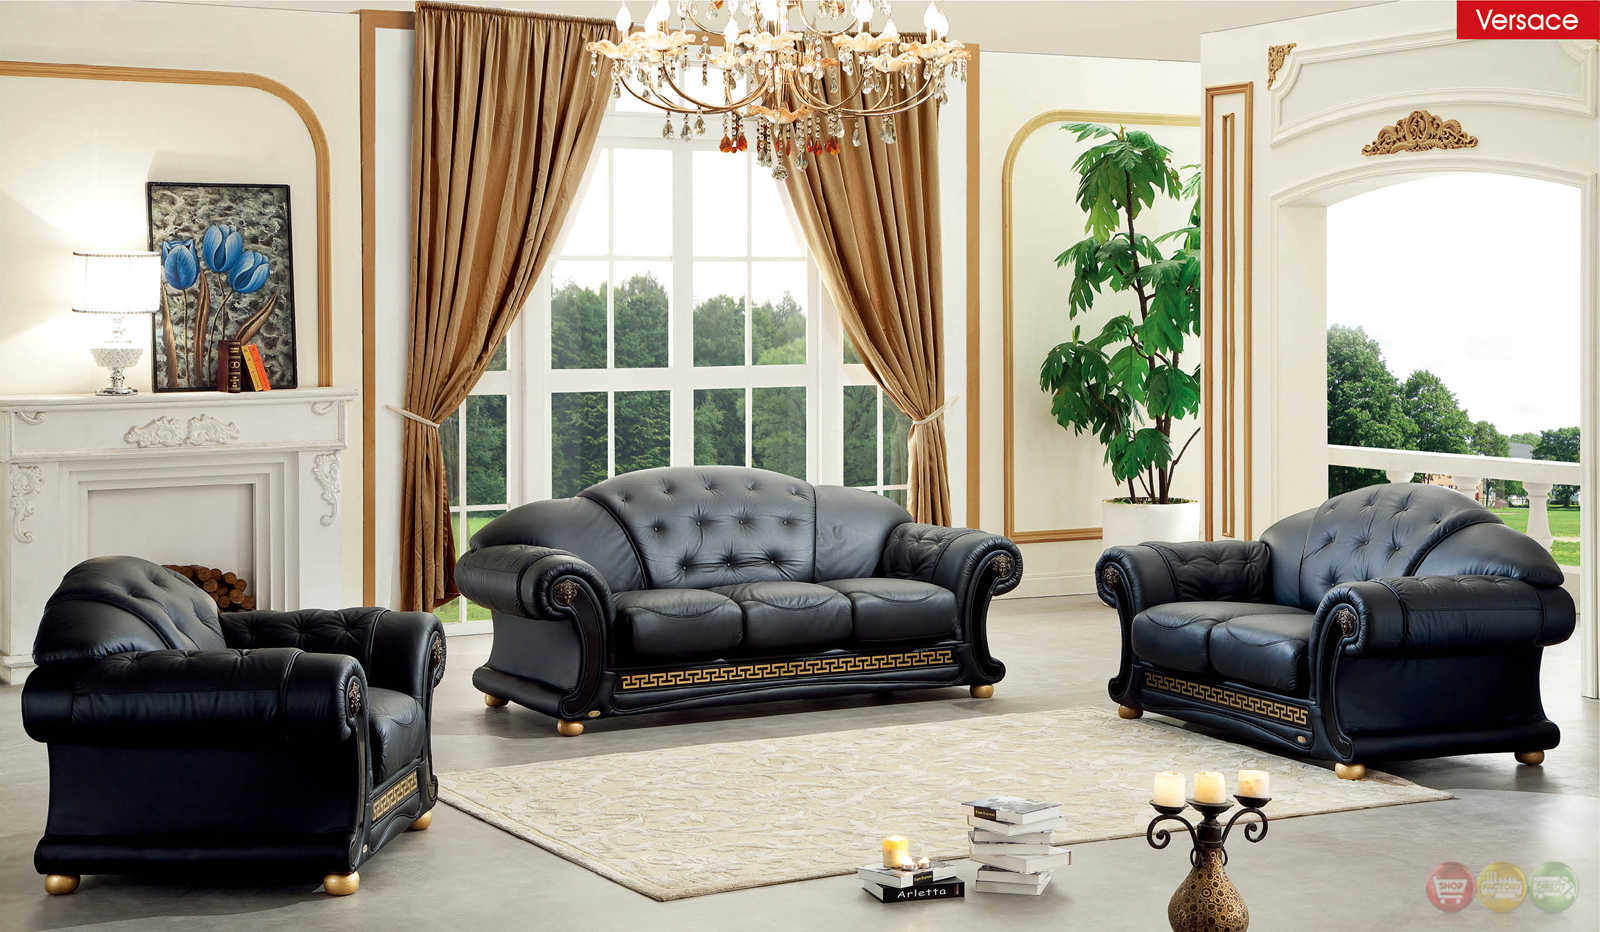 Versace Black Italian Top Grain Leather Luxurious Living Room Sofa Set